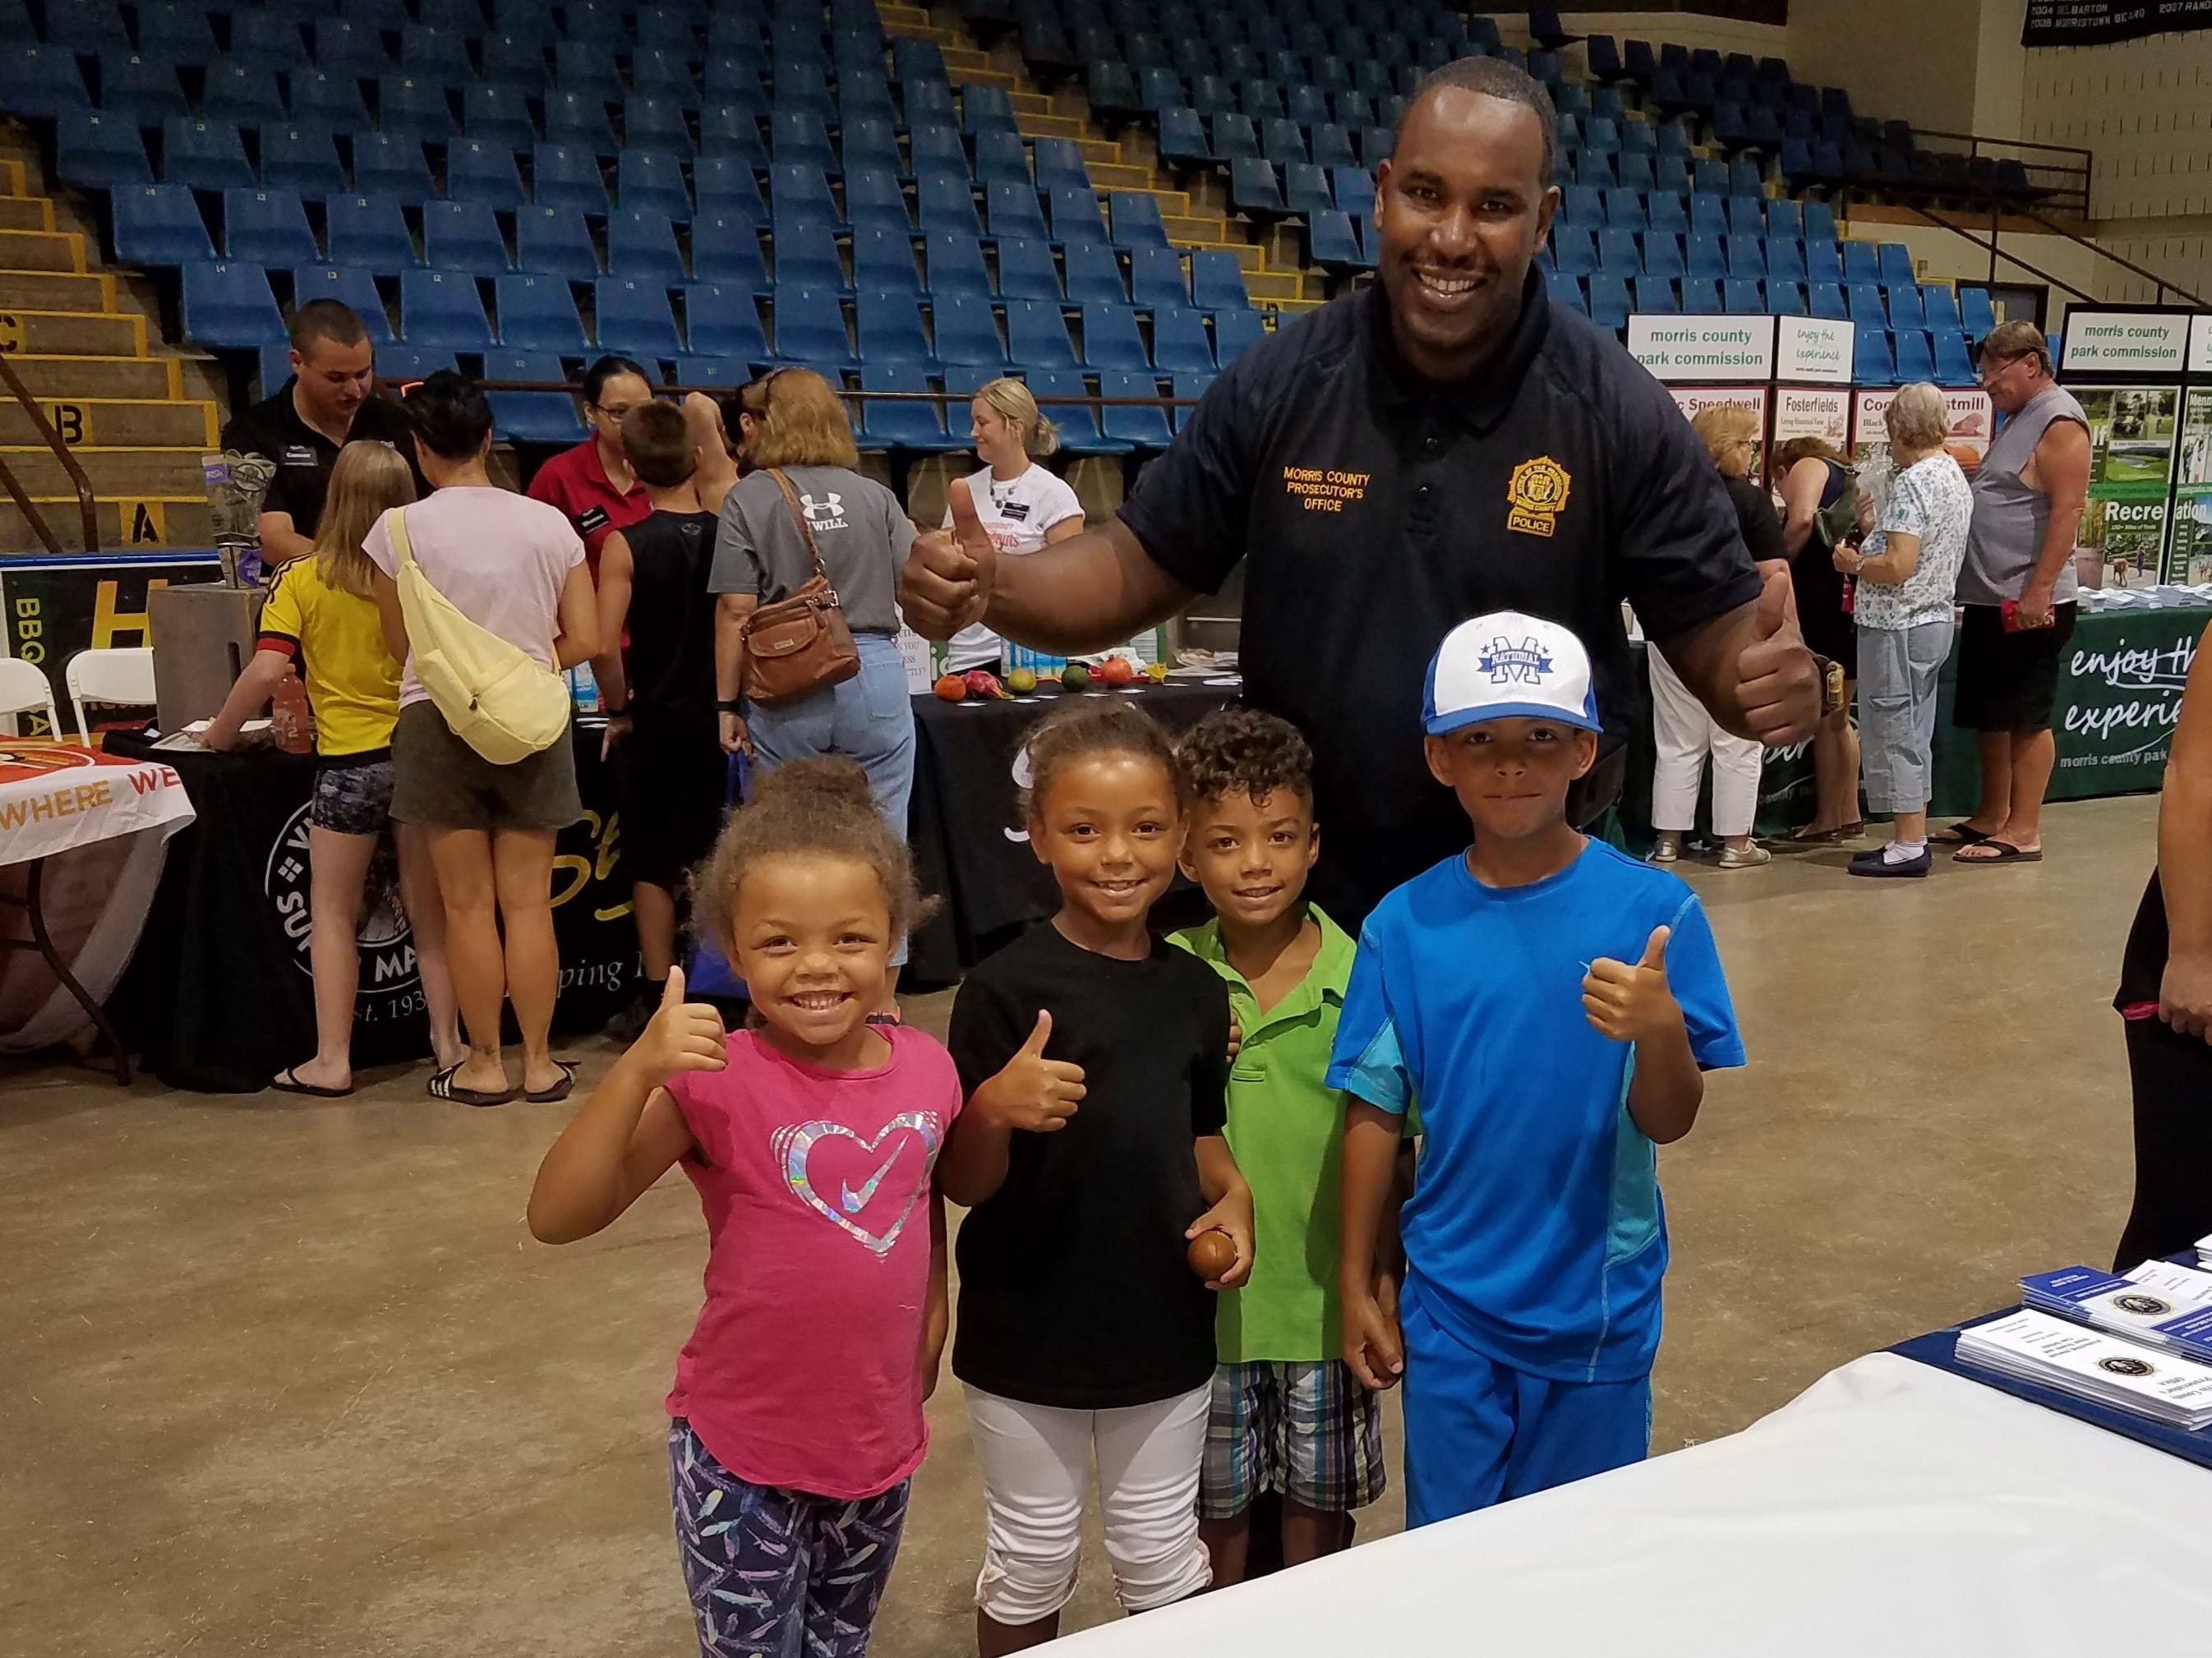 Detective Supervisor Patrick LaGuerre makes friends during the National Night Out event at Mennen Arena on Tuesday, August 7, 2018.